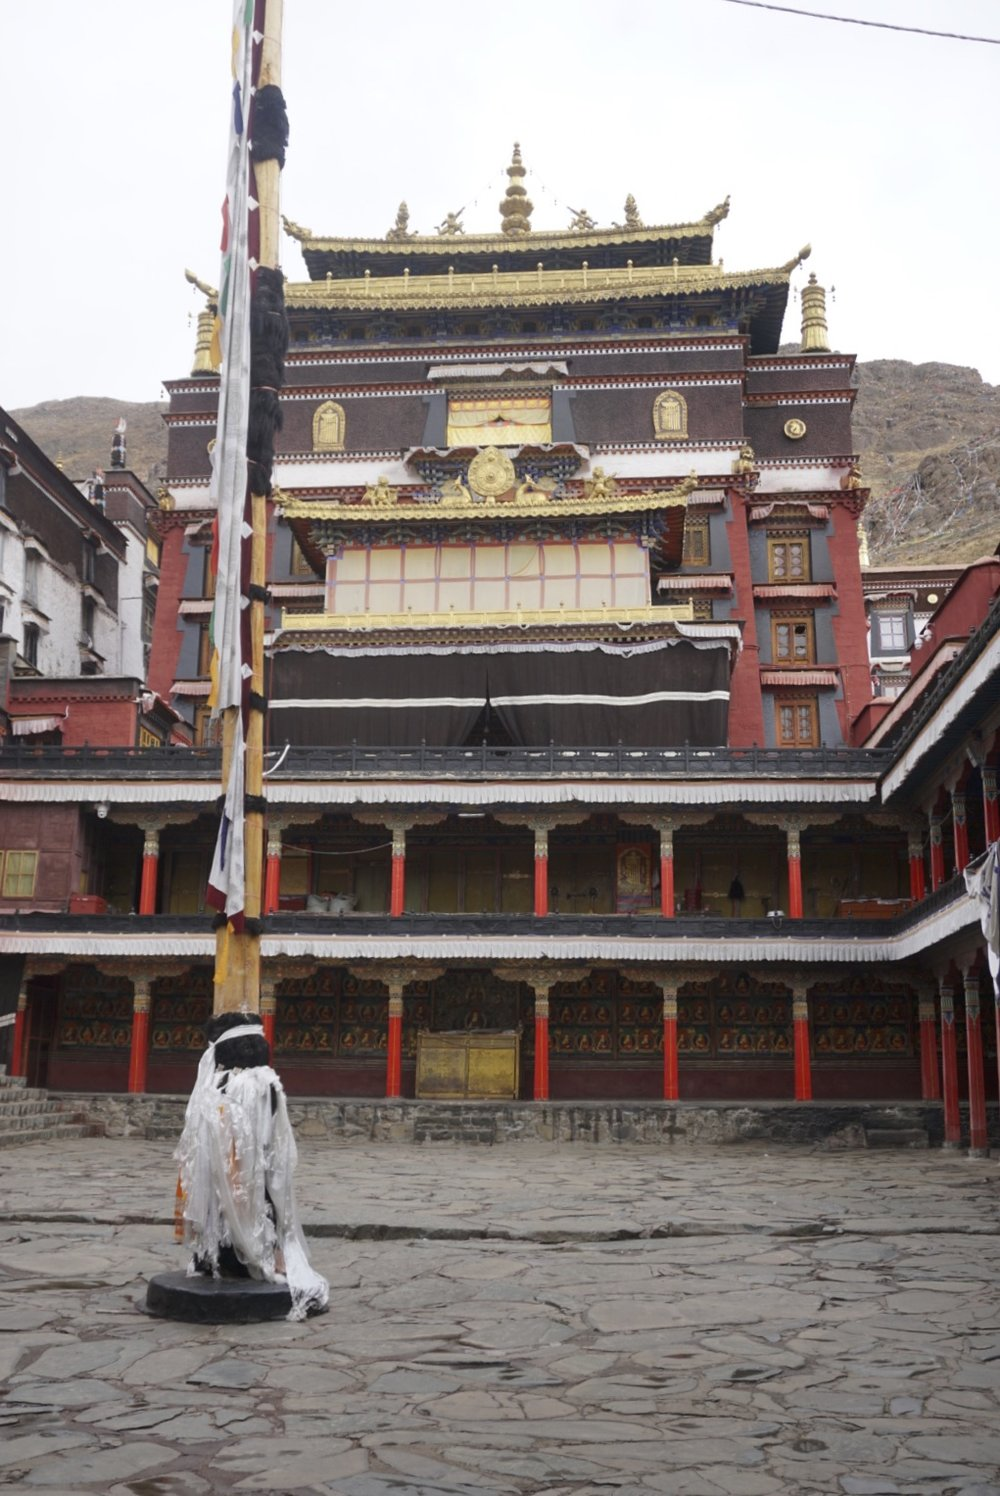 The courtyard of Tashailhunpo monastery witn flagpole in the foreground